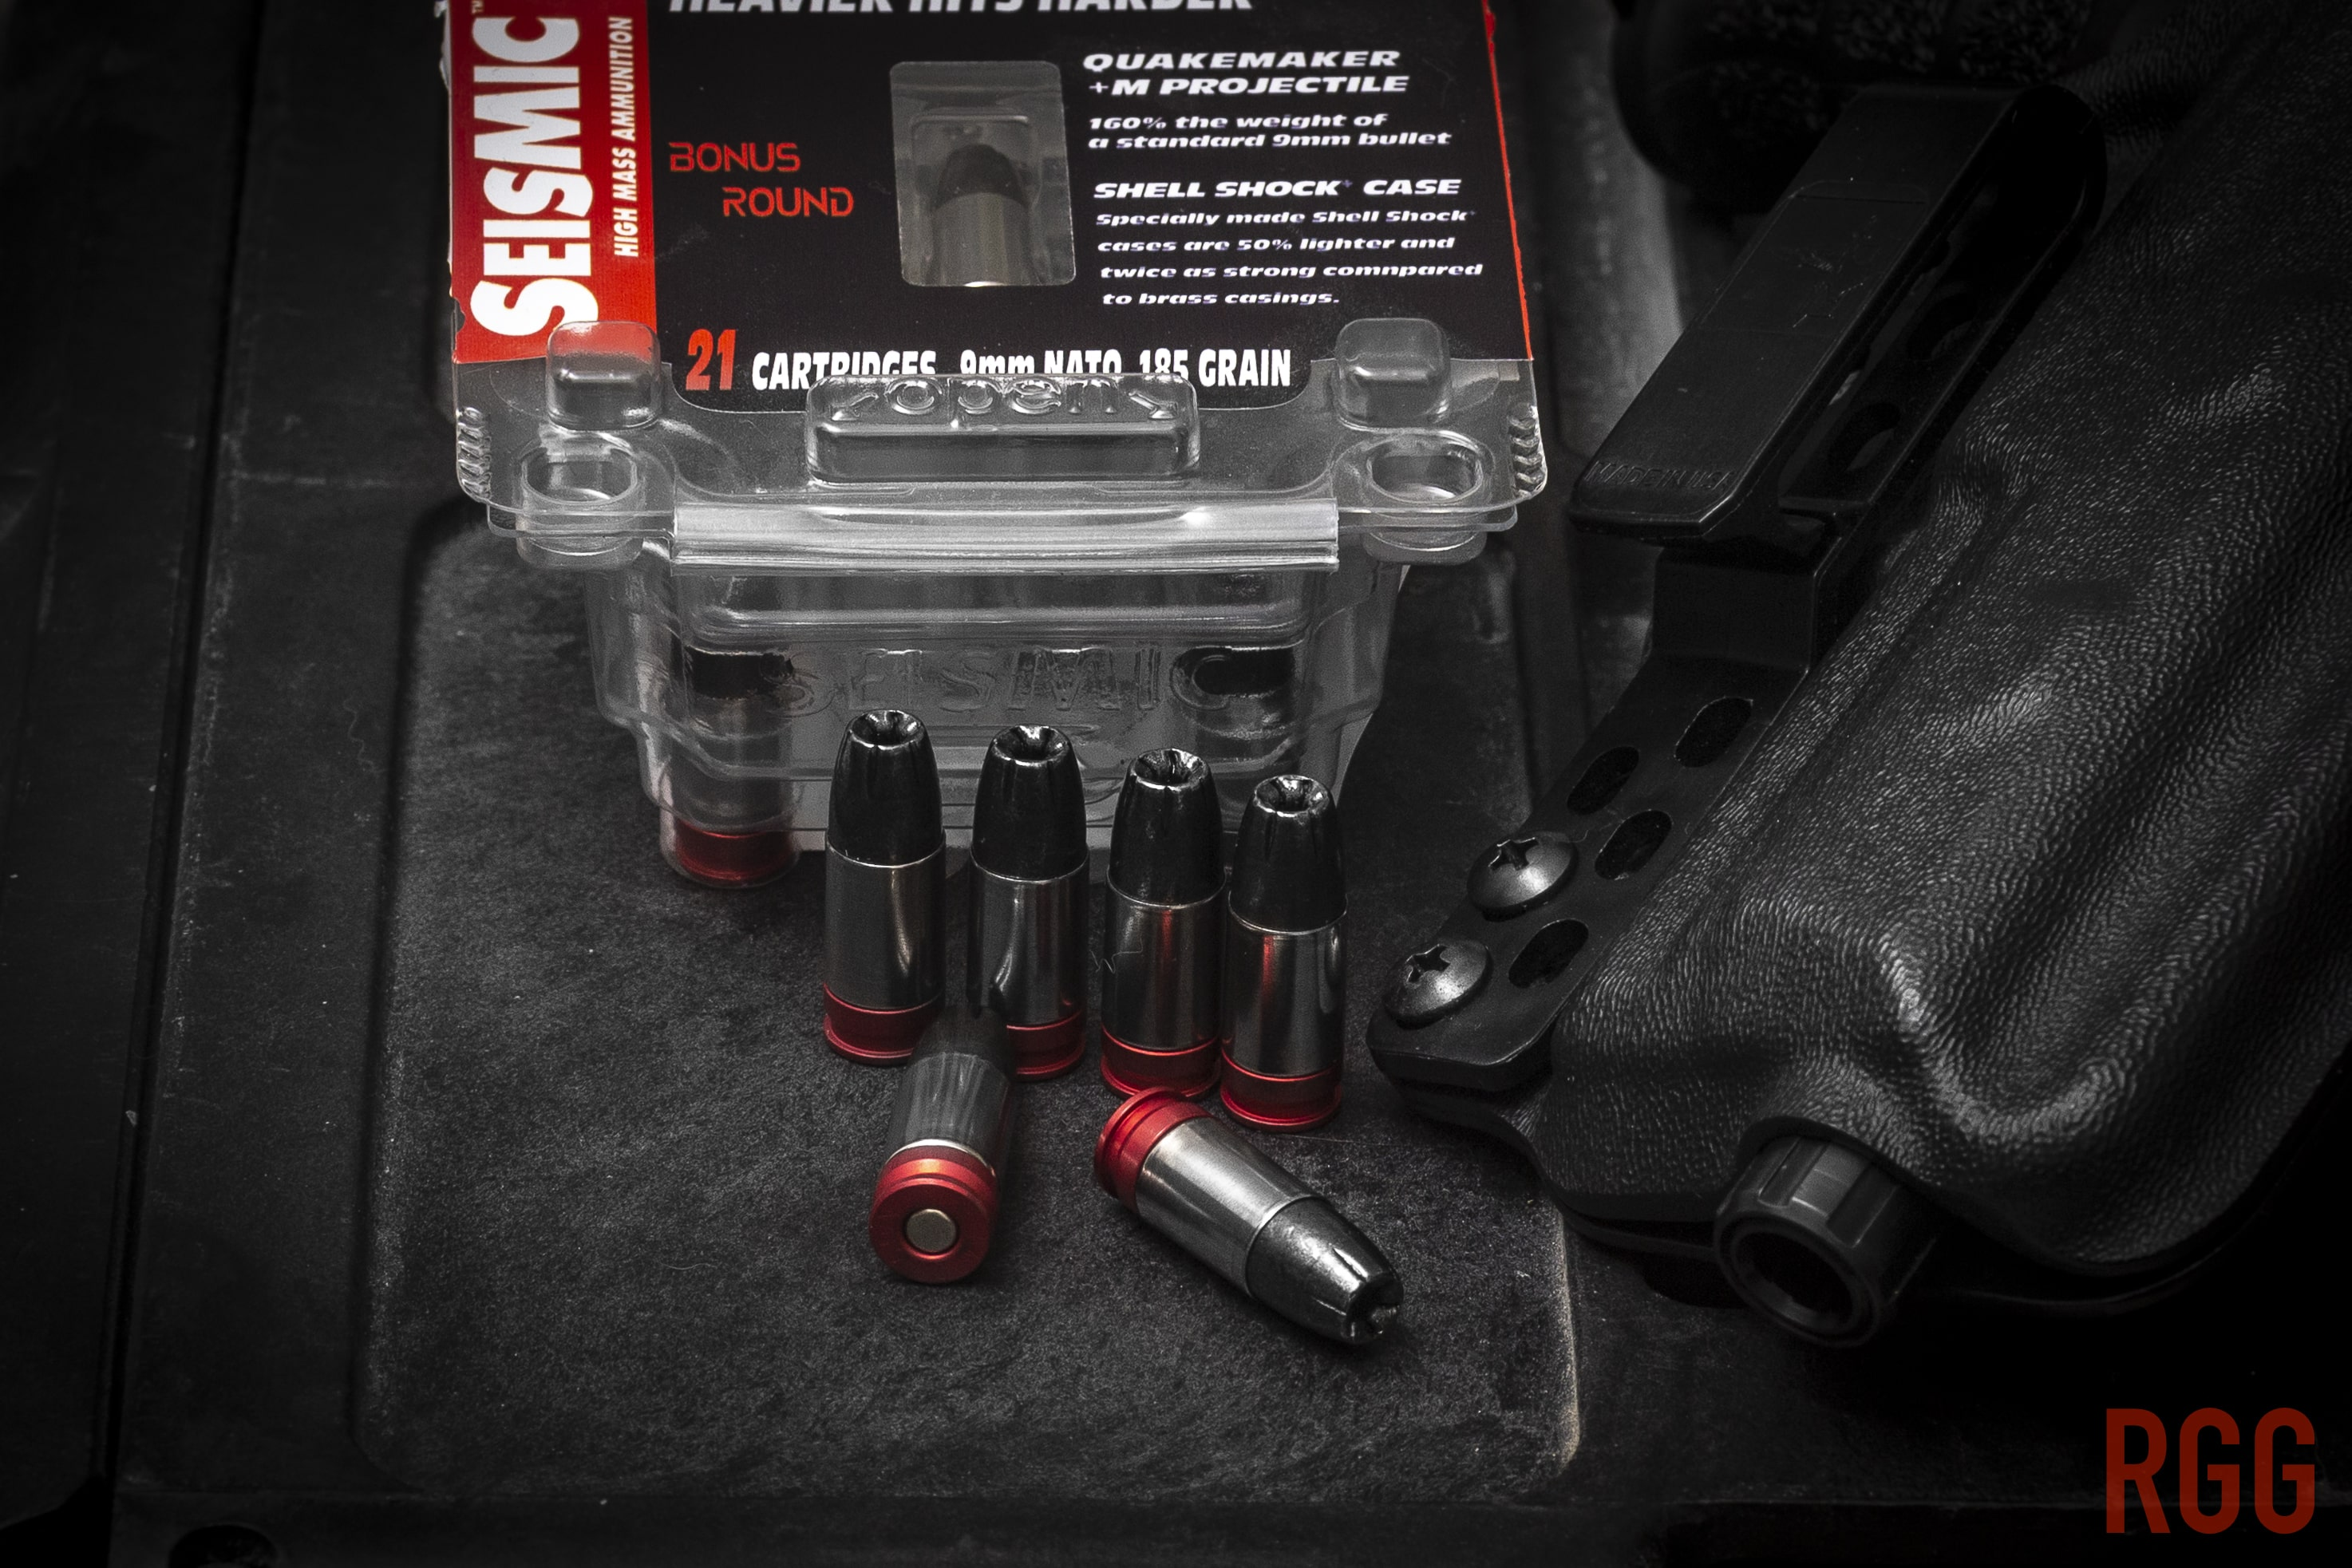 Seismic Ammo 9mm NATO 185 Grain +M Hollow Point Ammo.